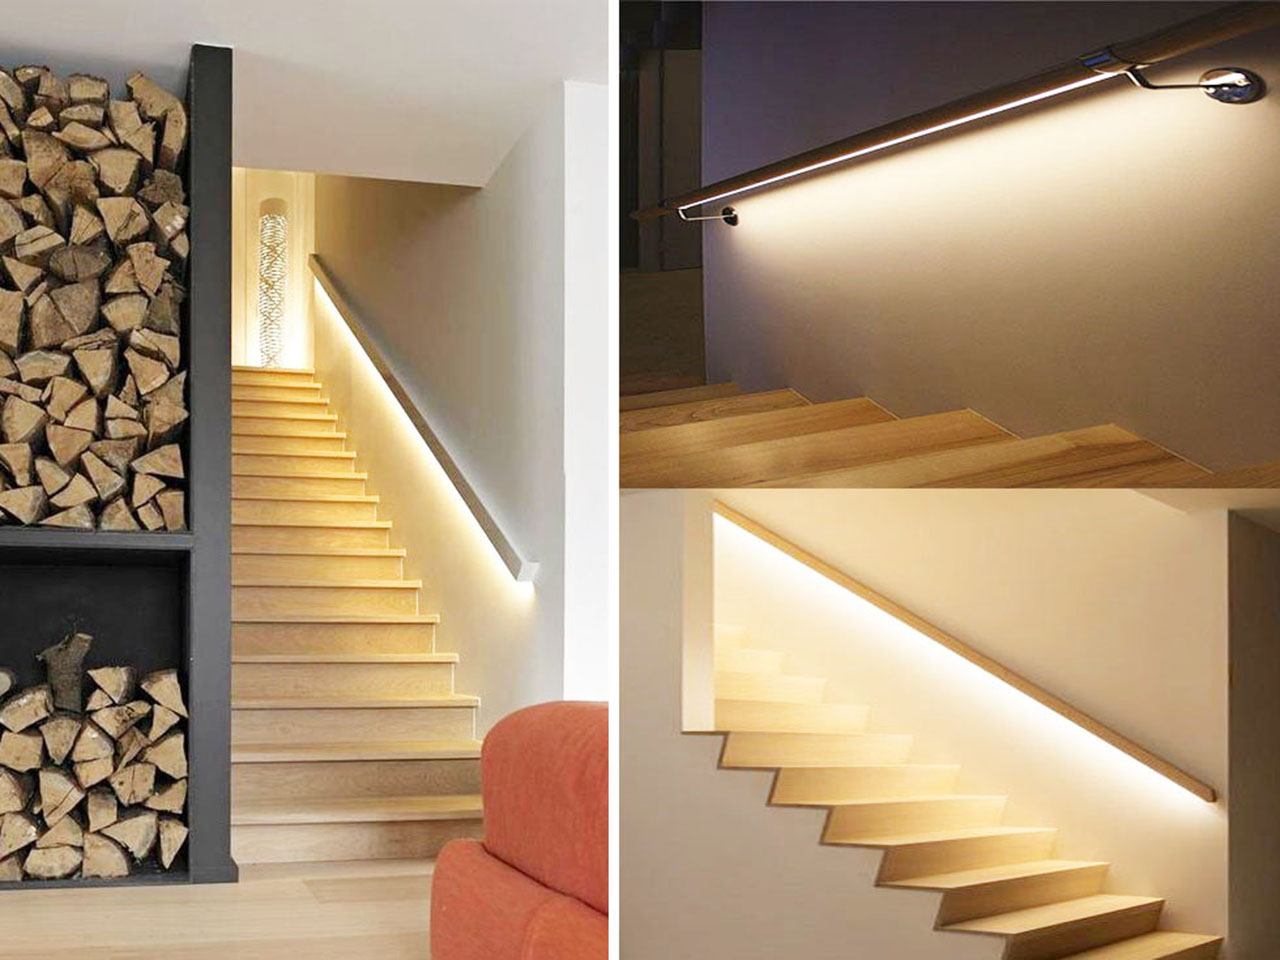 Descubre la decoraci n con luces led y todas sus ventajas for Apliques de luz para escaleras